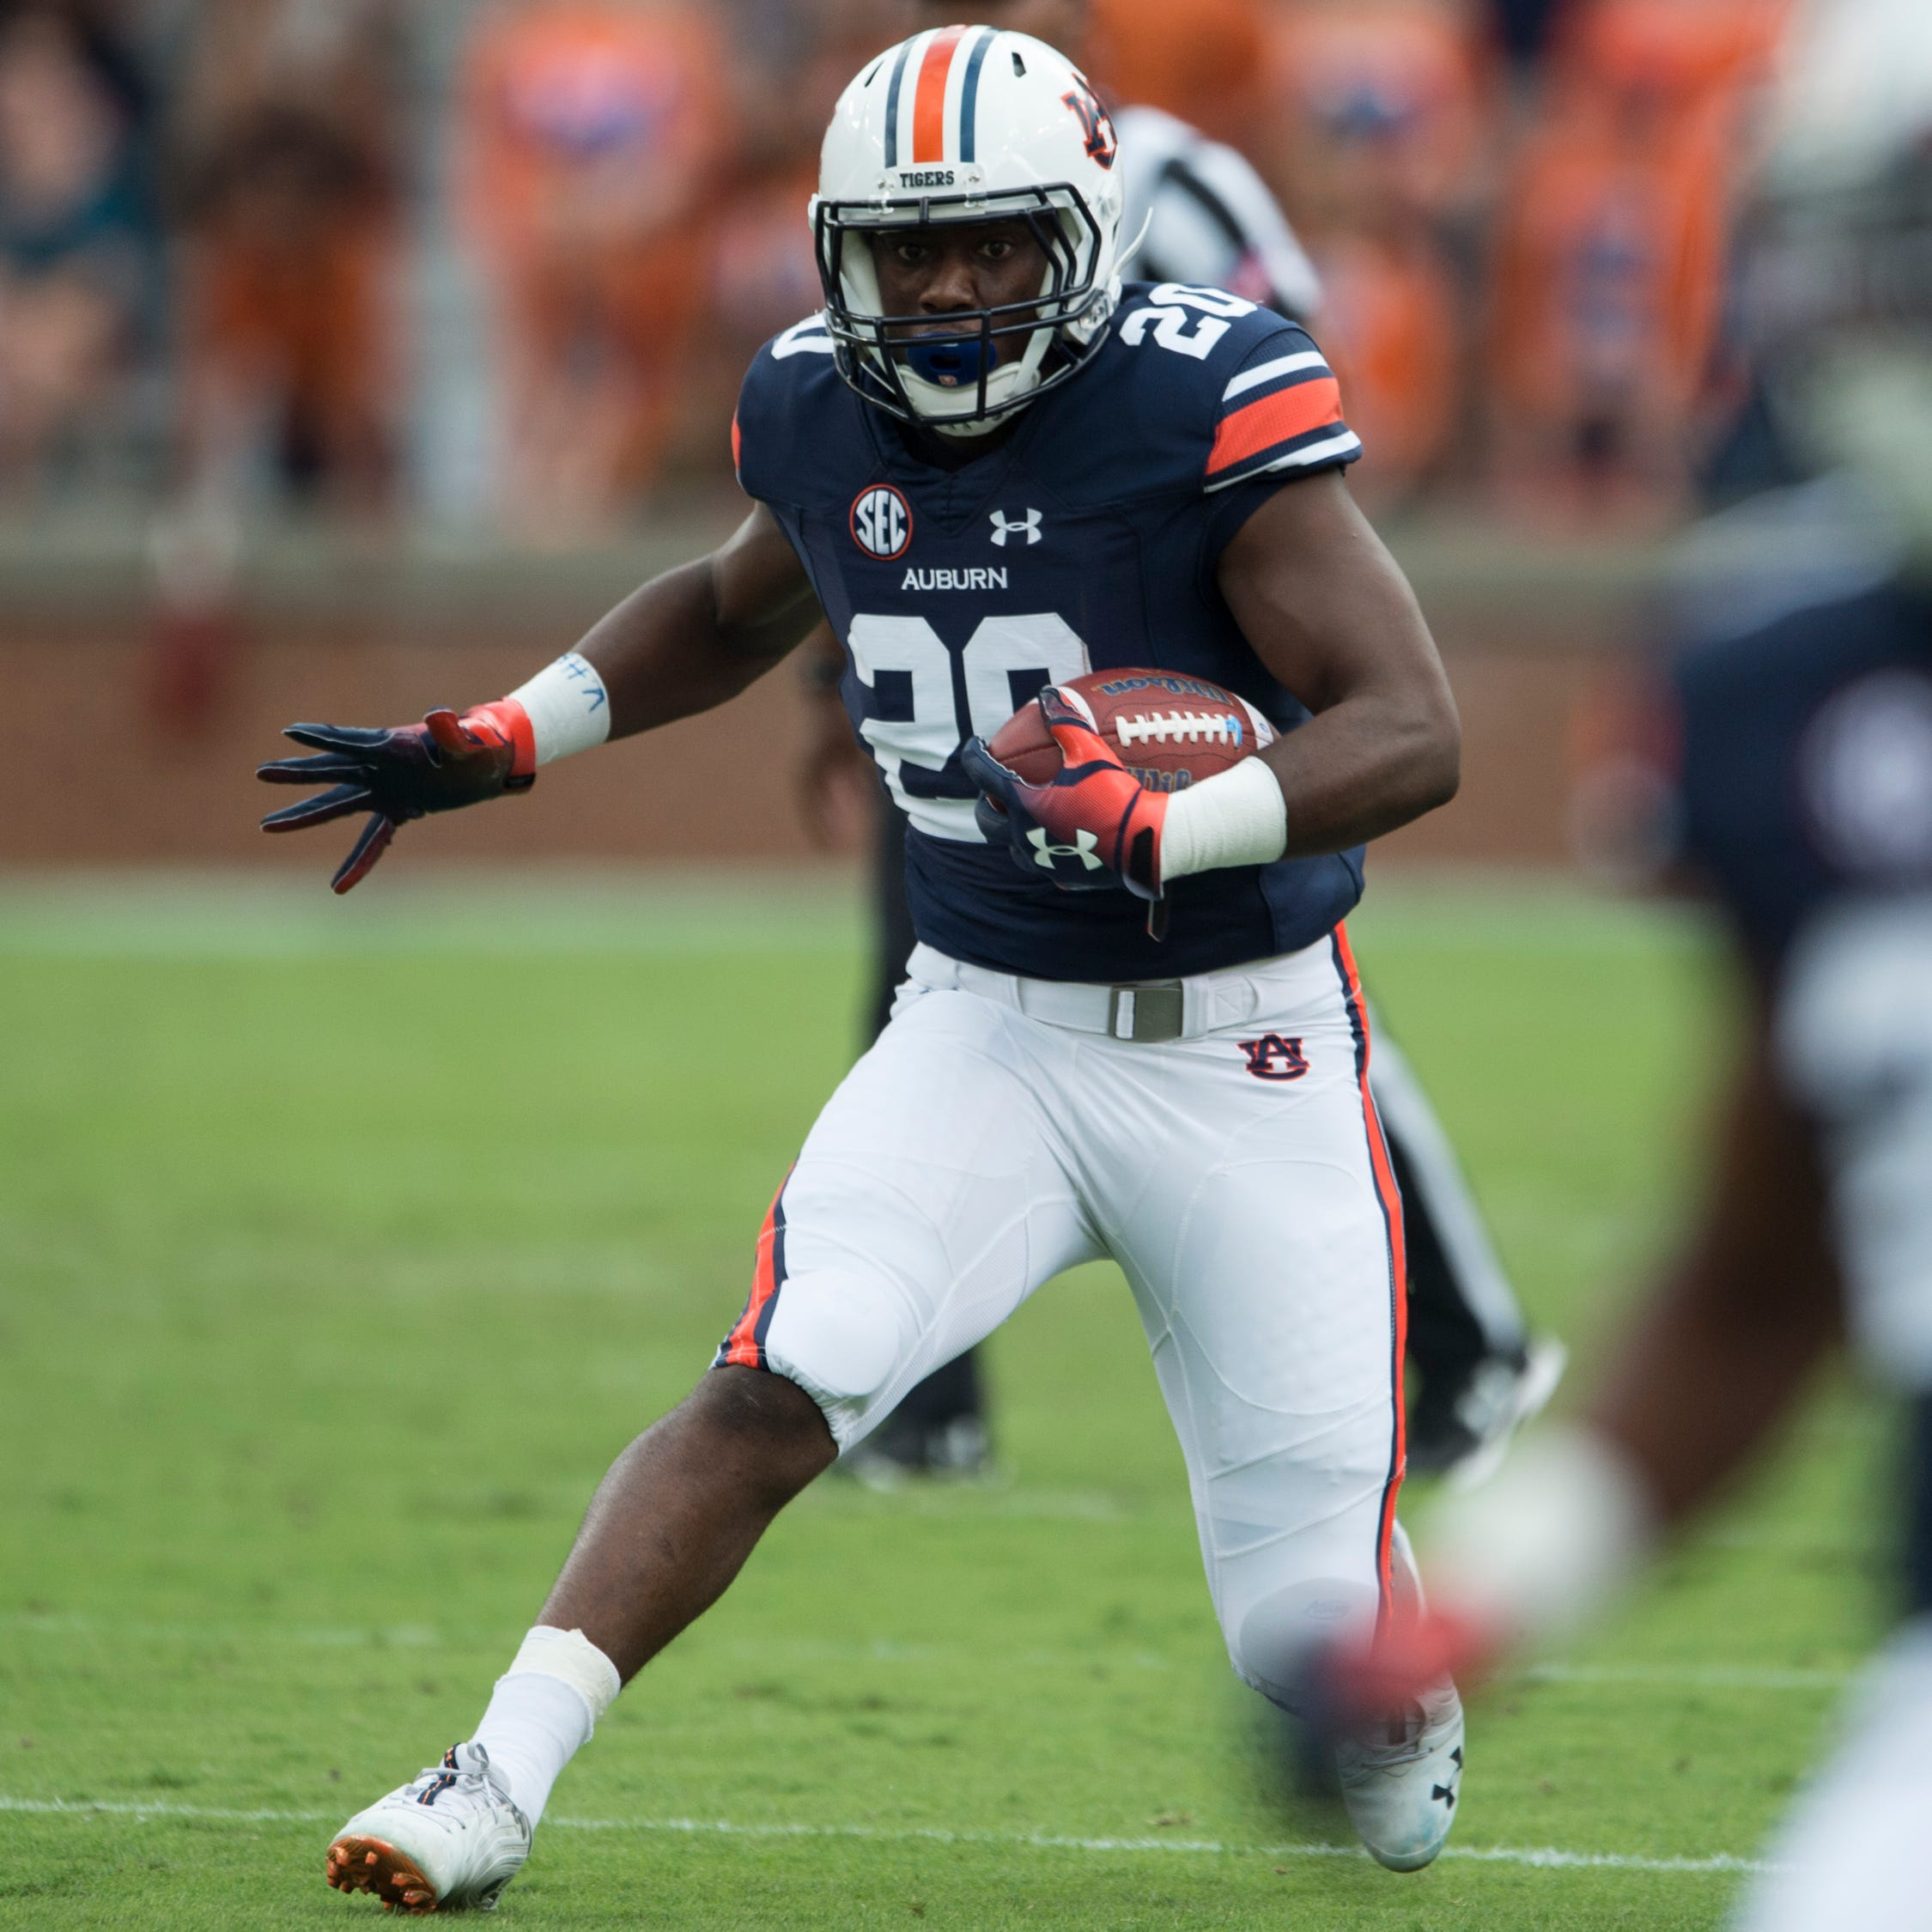 Running back Asa Martin will transfer from Auburn after puzzling true freshman season